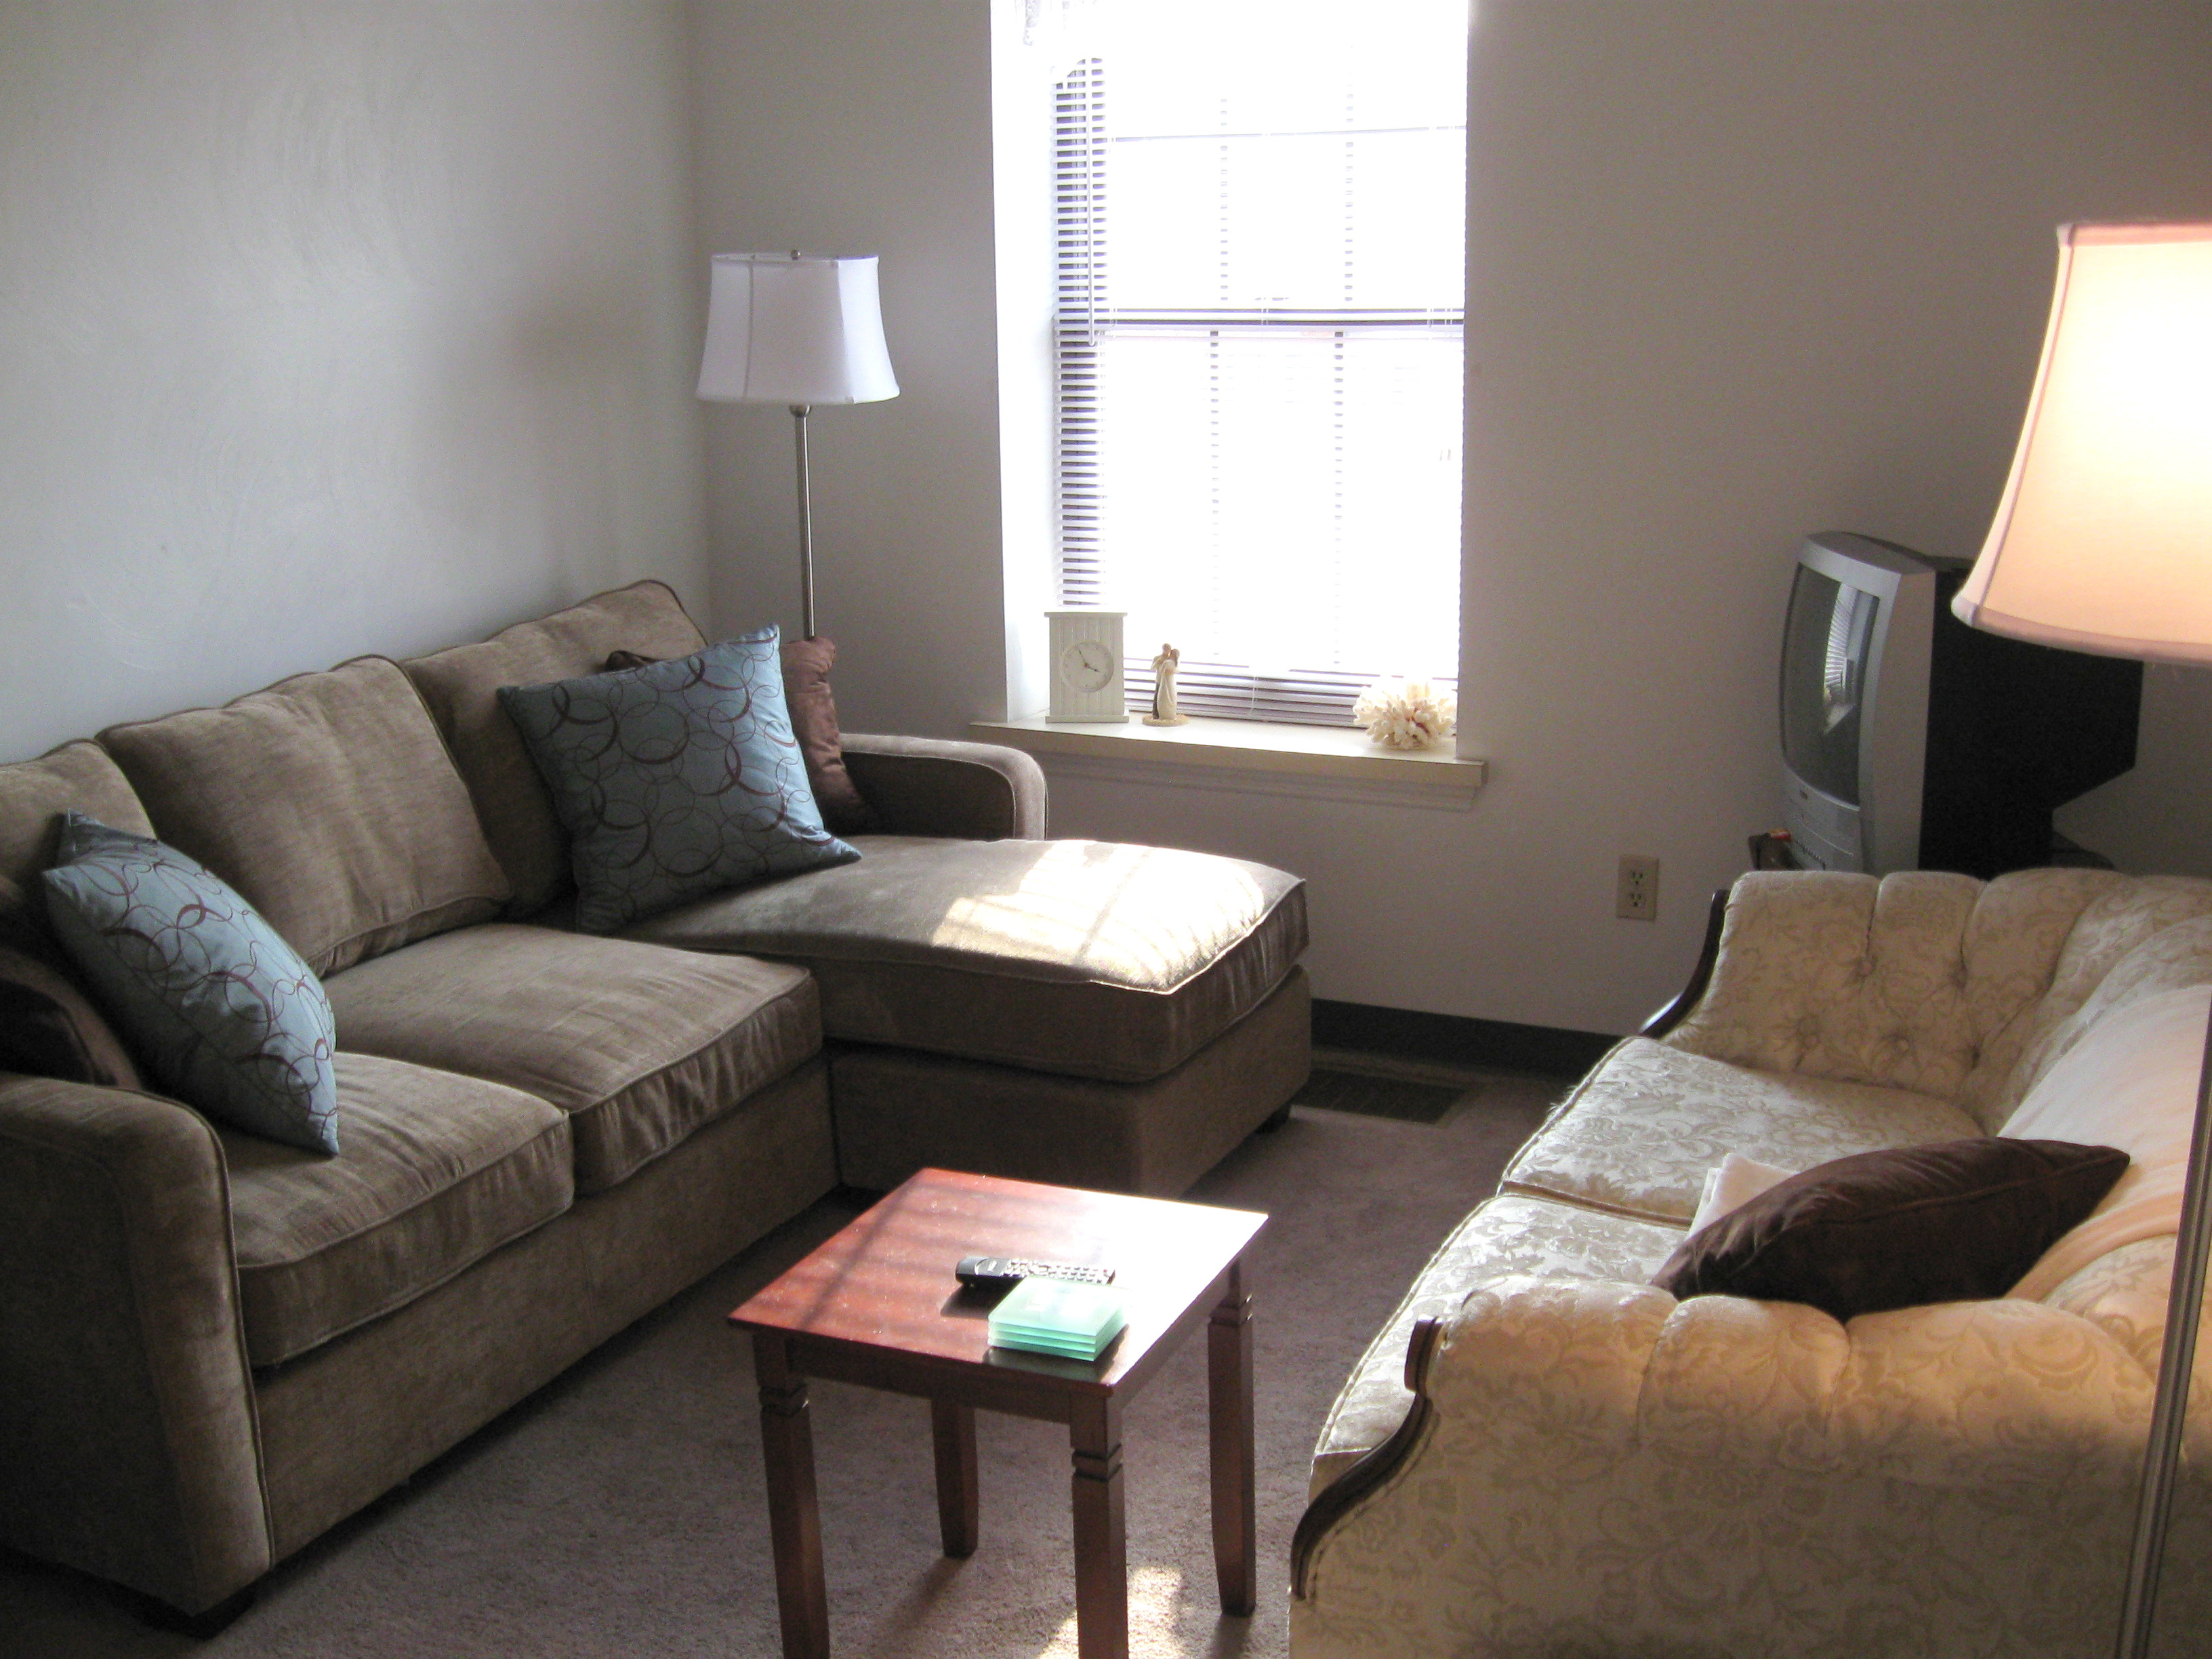 Drawn room old apartment Small of Living Room Old